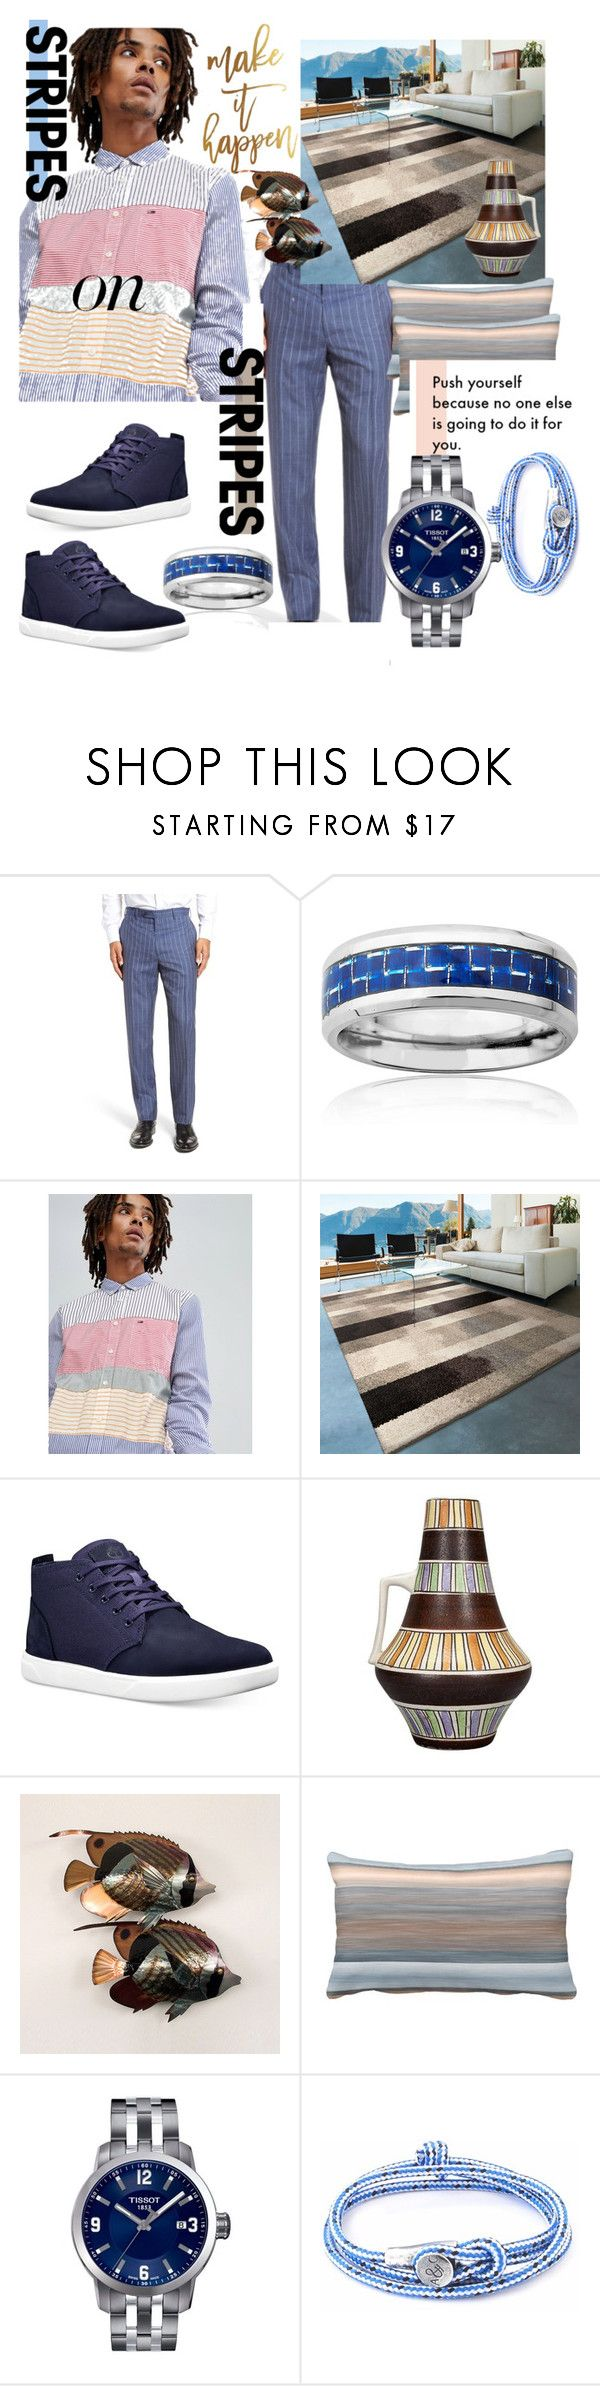 """Men Wear Stripes on Stripes"" by mdfletch ❤ liked on Polyvore featuring J.B. Britches, West Coast Jewelry, Hilfiger Denim, Orian Rugs, Timberland, Frontgate, Tissot, Anchor & Crew, men's fashion and menswear"